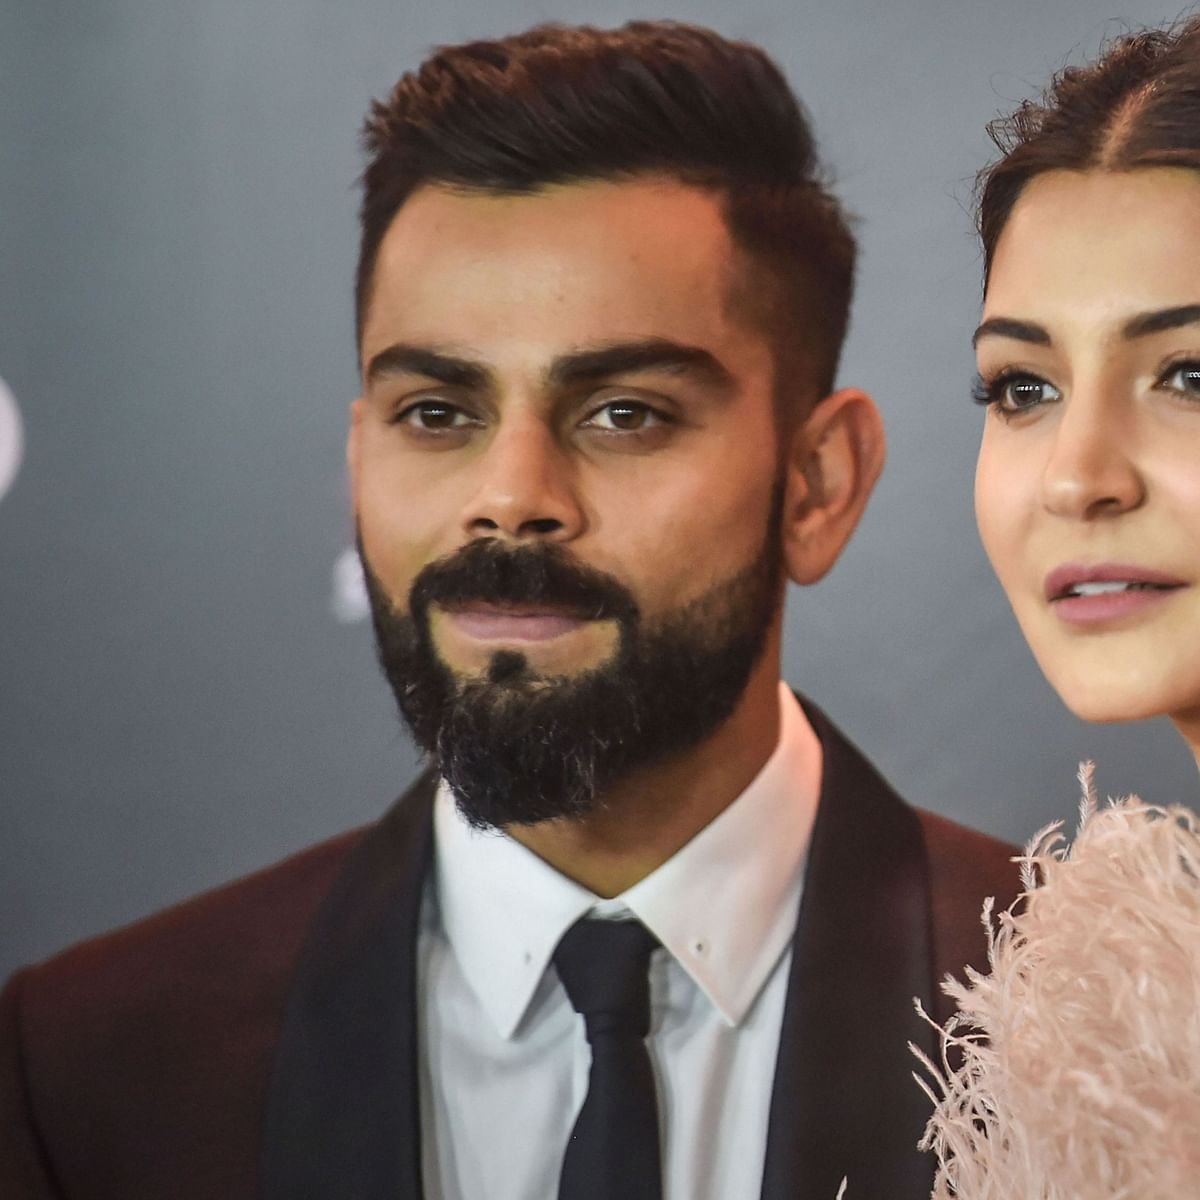 Doting dad Virat Kohli changes Twitter bio following birth of daughter, here's what it reads now